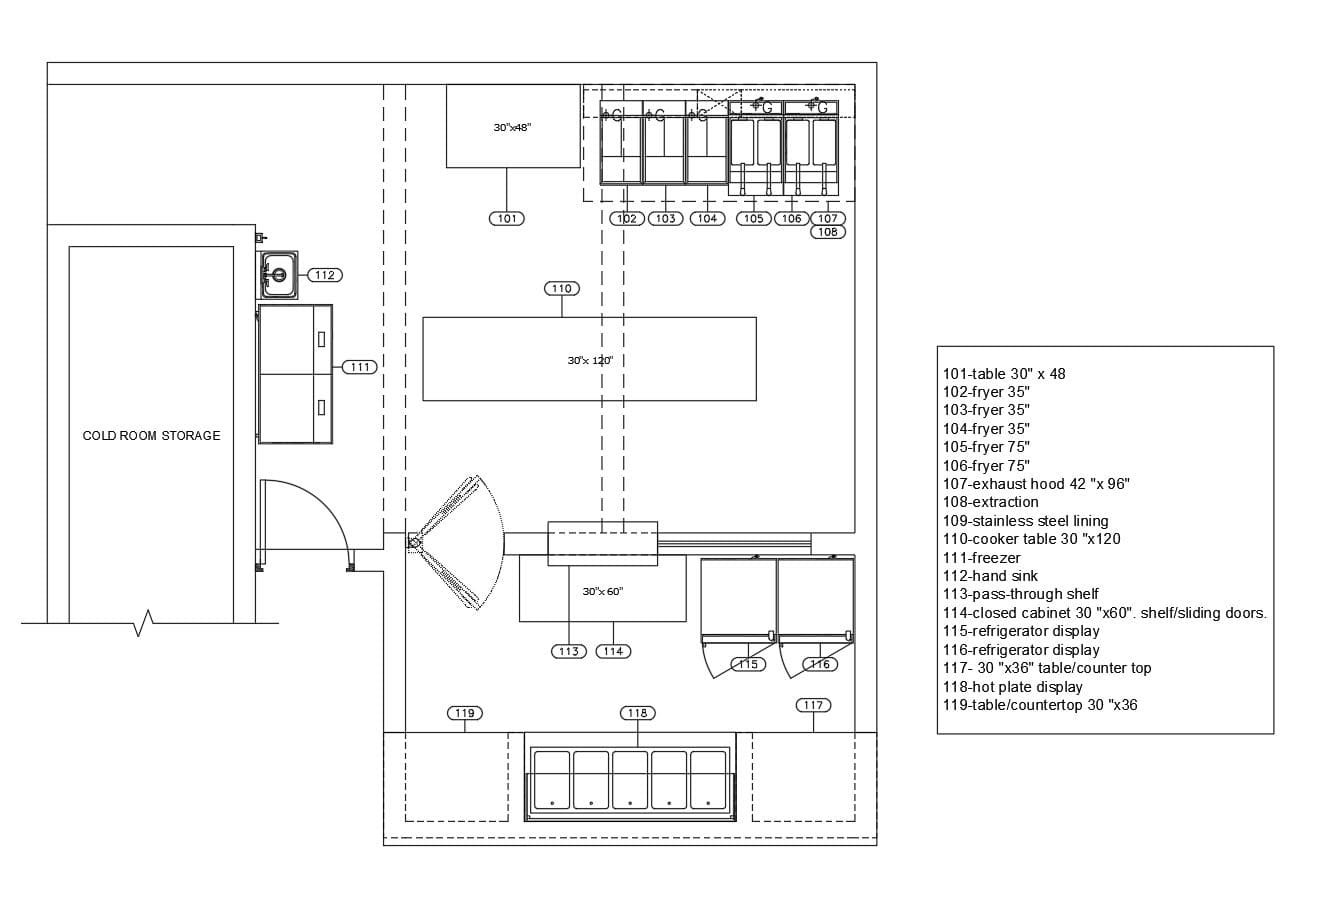 Small Fried Chicken Kitchen Equipment With Layout Example